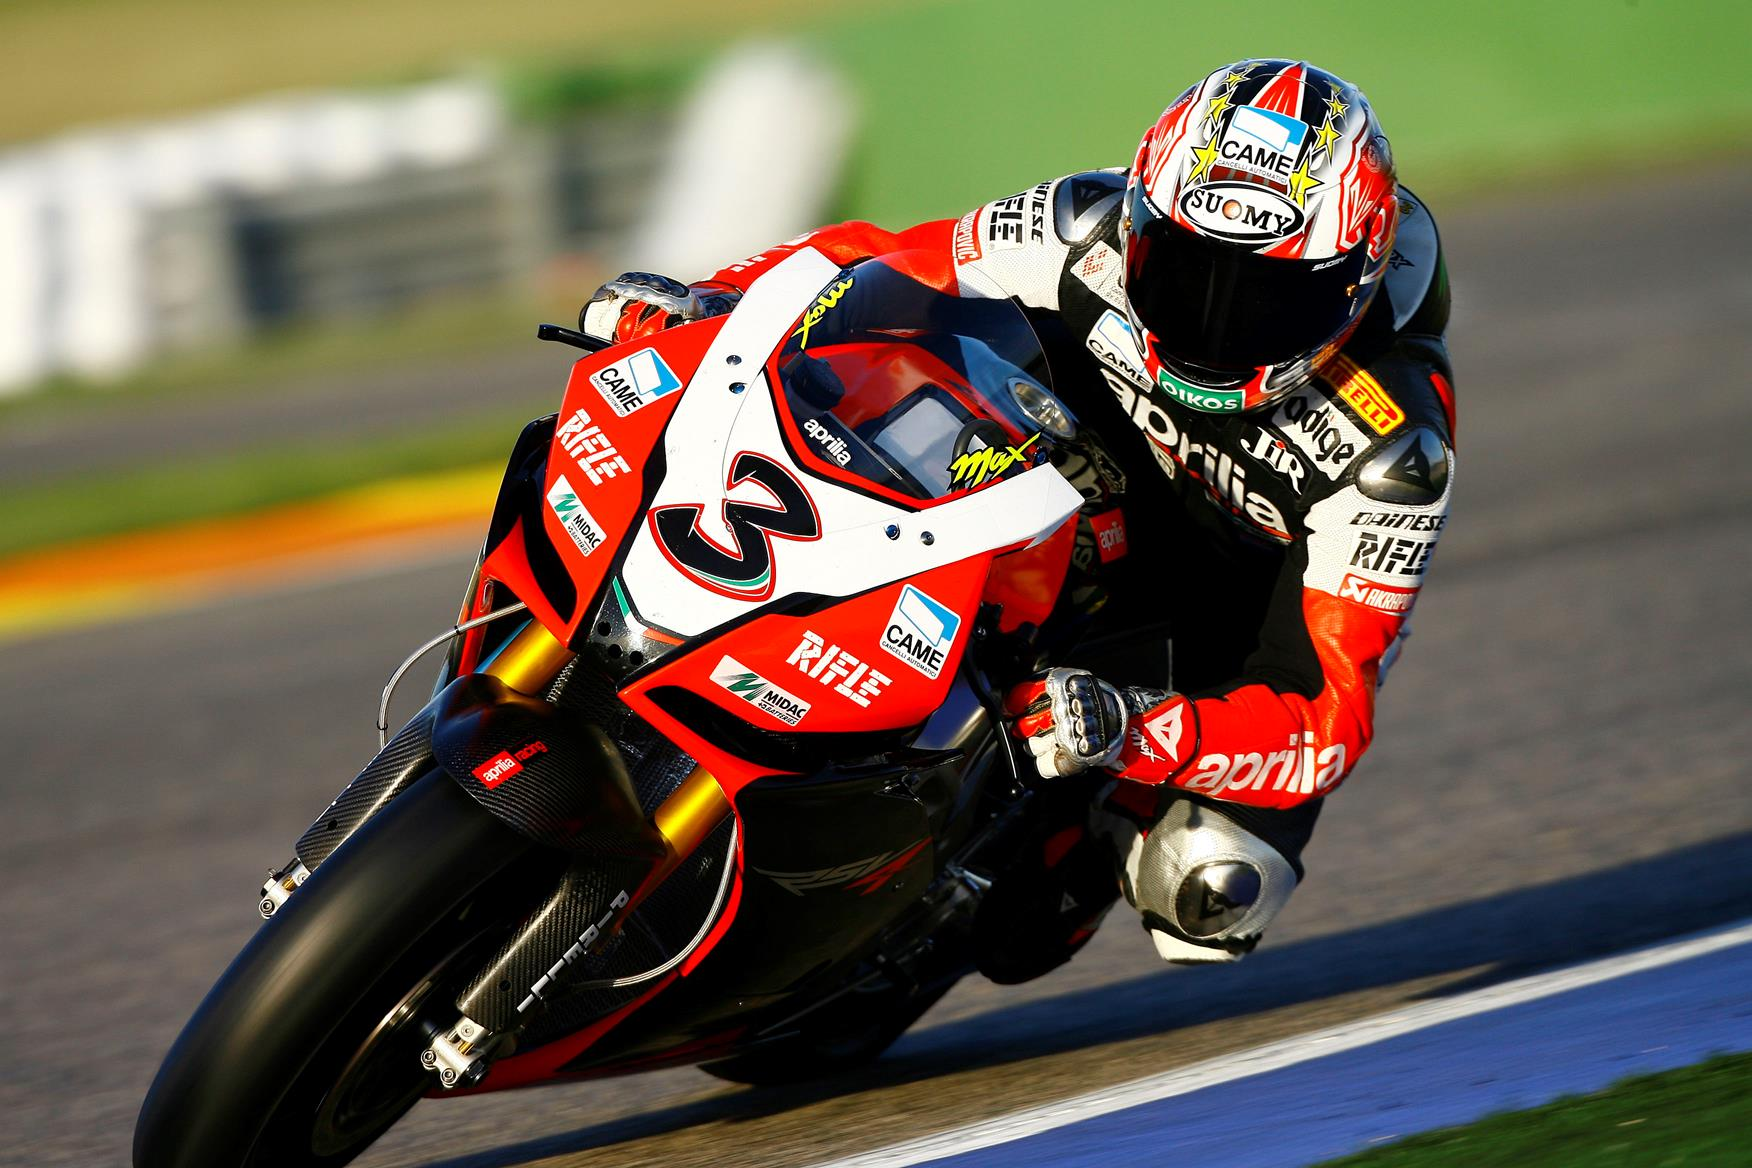 Biaggi ends 2009 on top at valencia test mcn biaggi saved his best until last at valencia altavistaventures Gallery